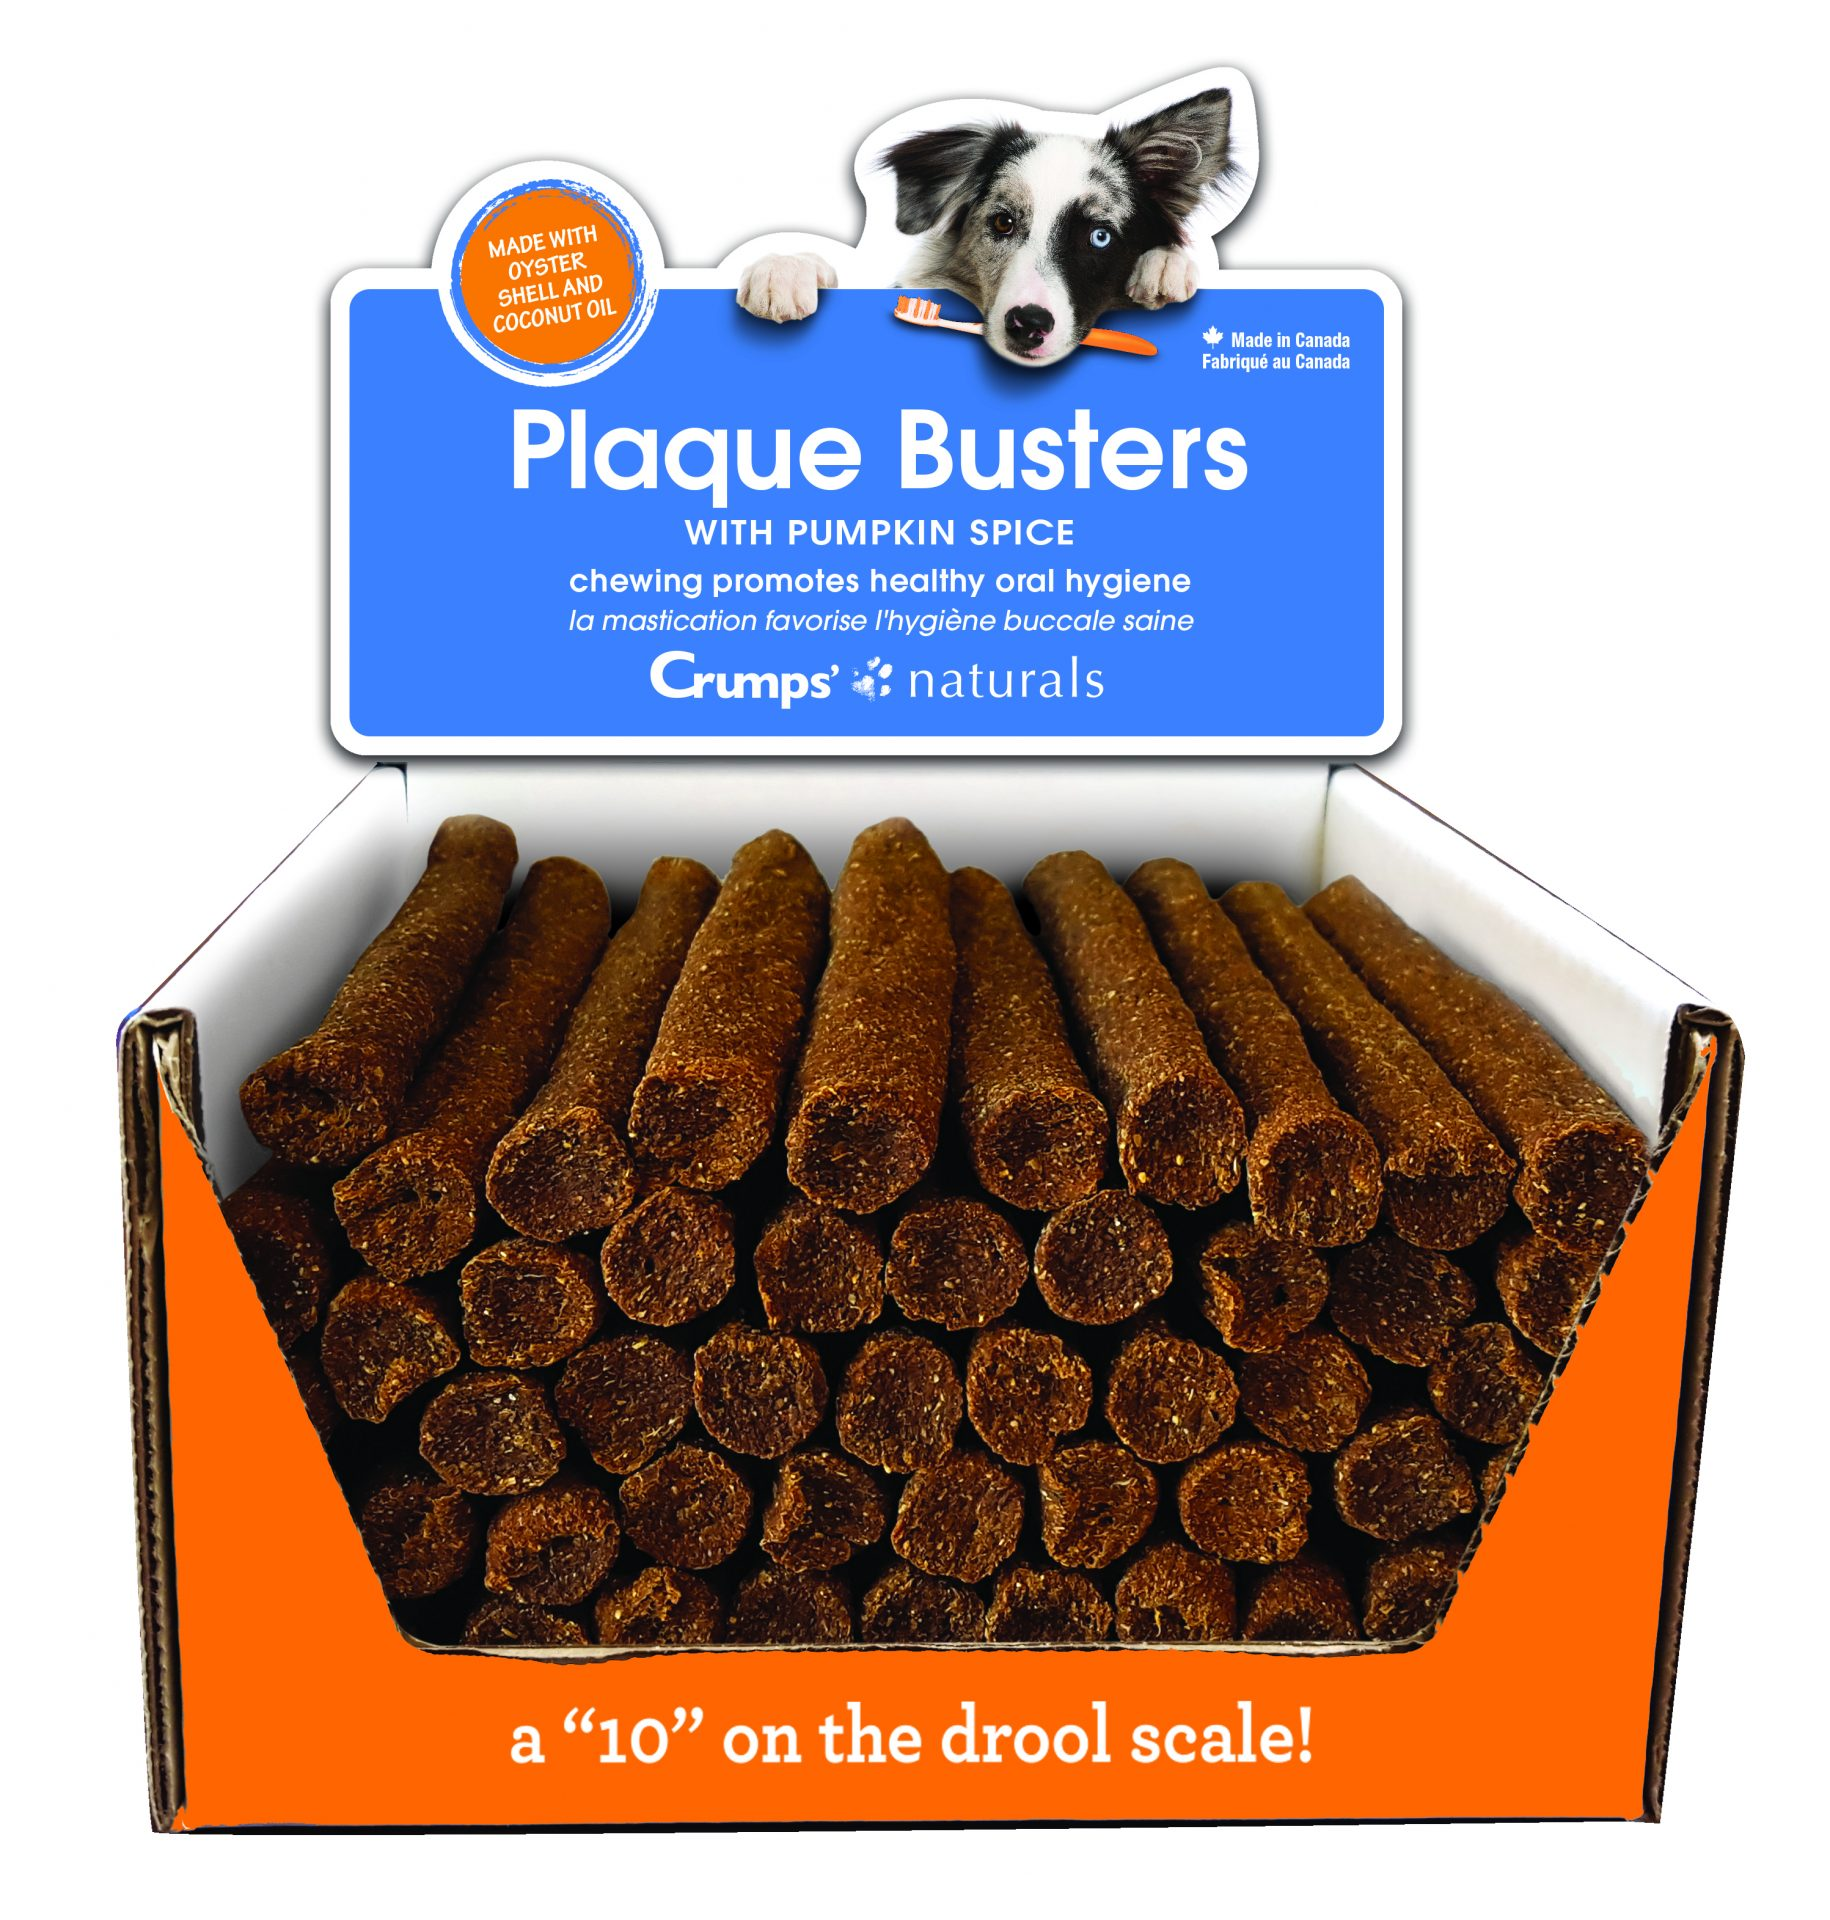 Crumps' Naturals Plaque Busters with Pumpkin Spice Dog Treats, 50-count